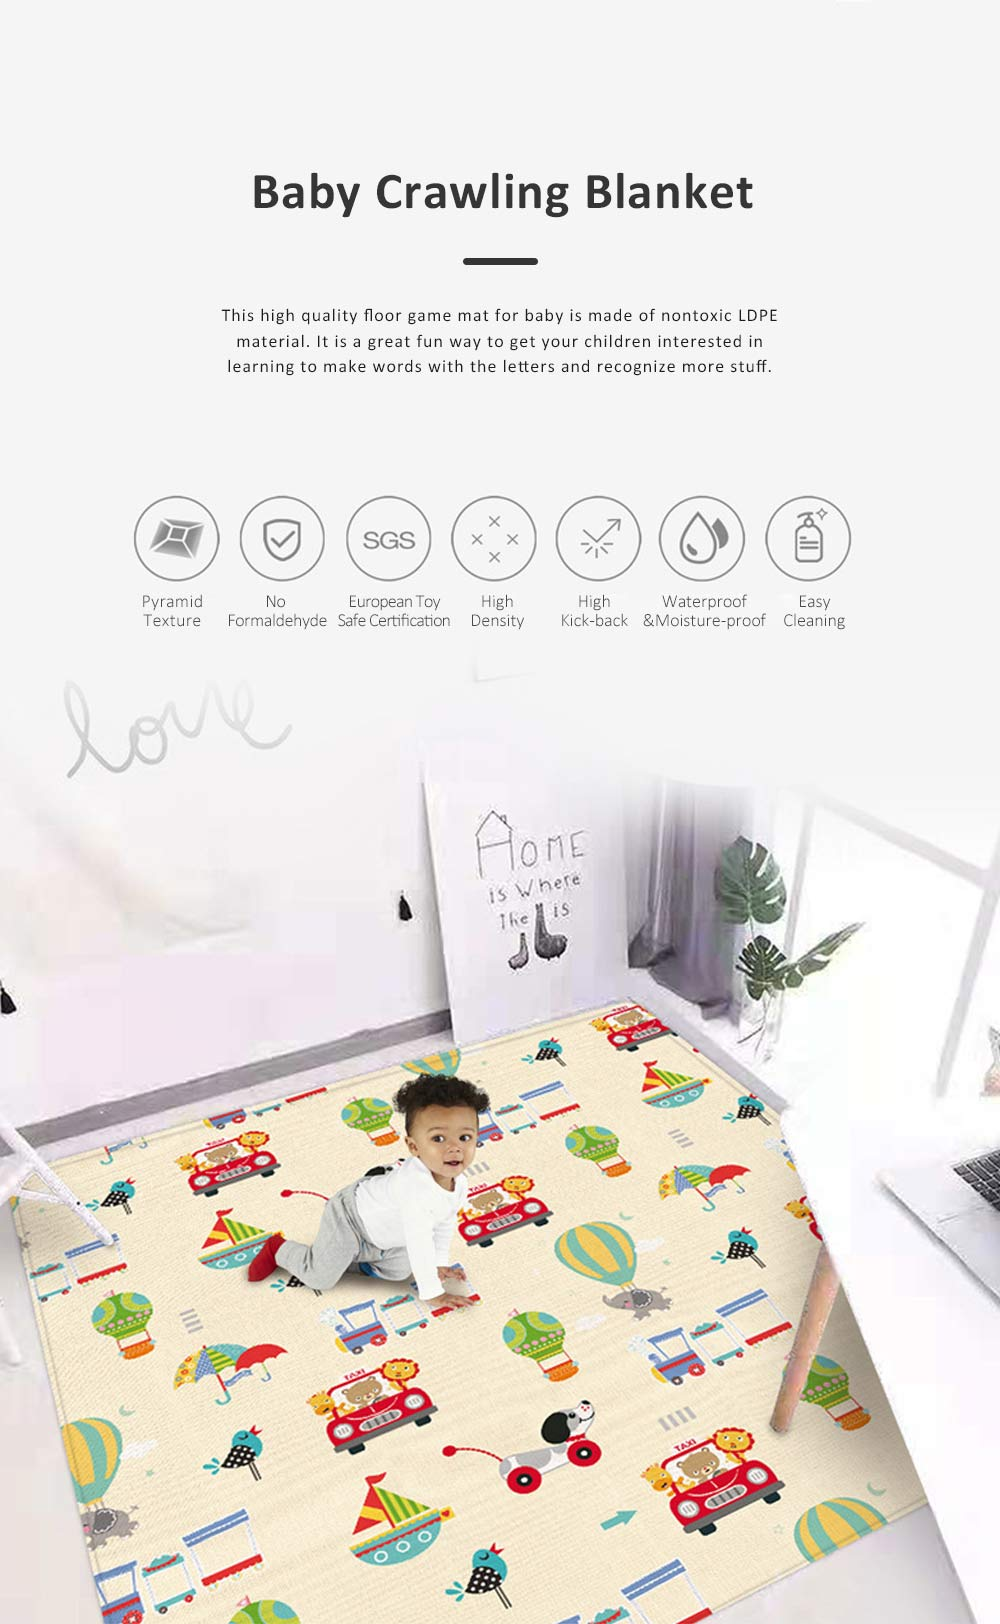 New Nontoxic Odorless LDPE Material Thicken Play Blanket for Baby, Cute Pattern Floor Crawling Mat Indoor Outdoor 0